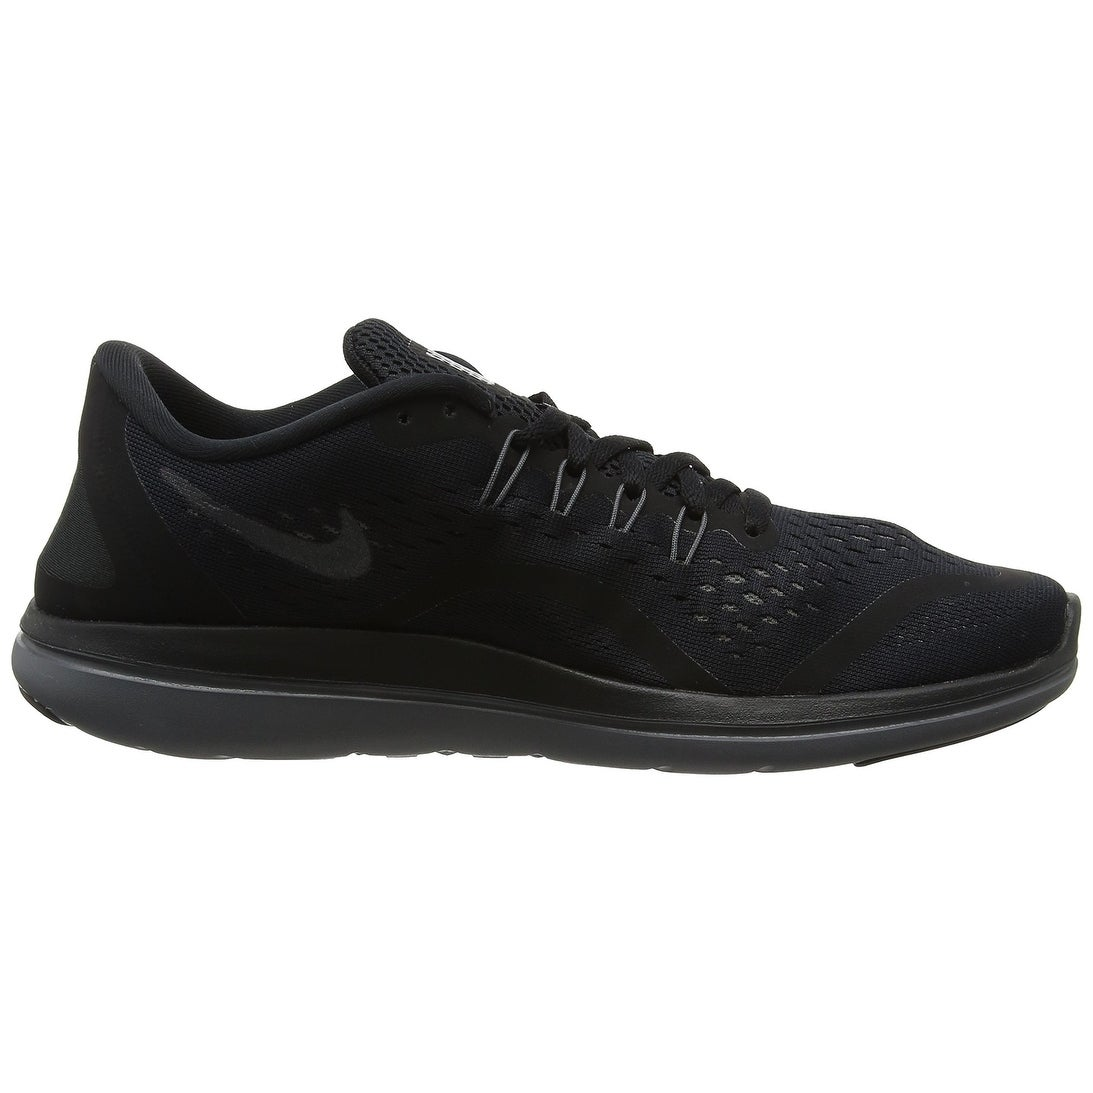 48c23ea49025 Shop Women s Nike Flex 2017 RN Running Shoe Black Metallic Hematite  Anthracite Dark Grey